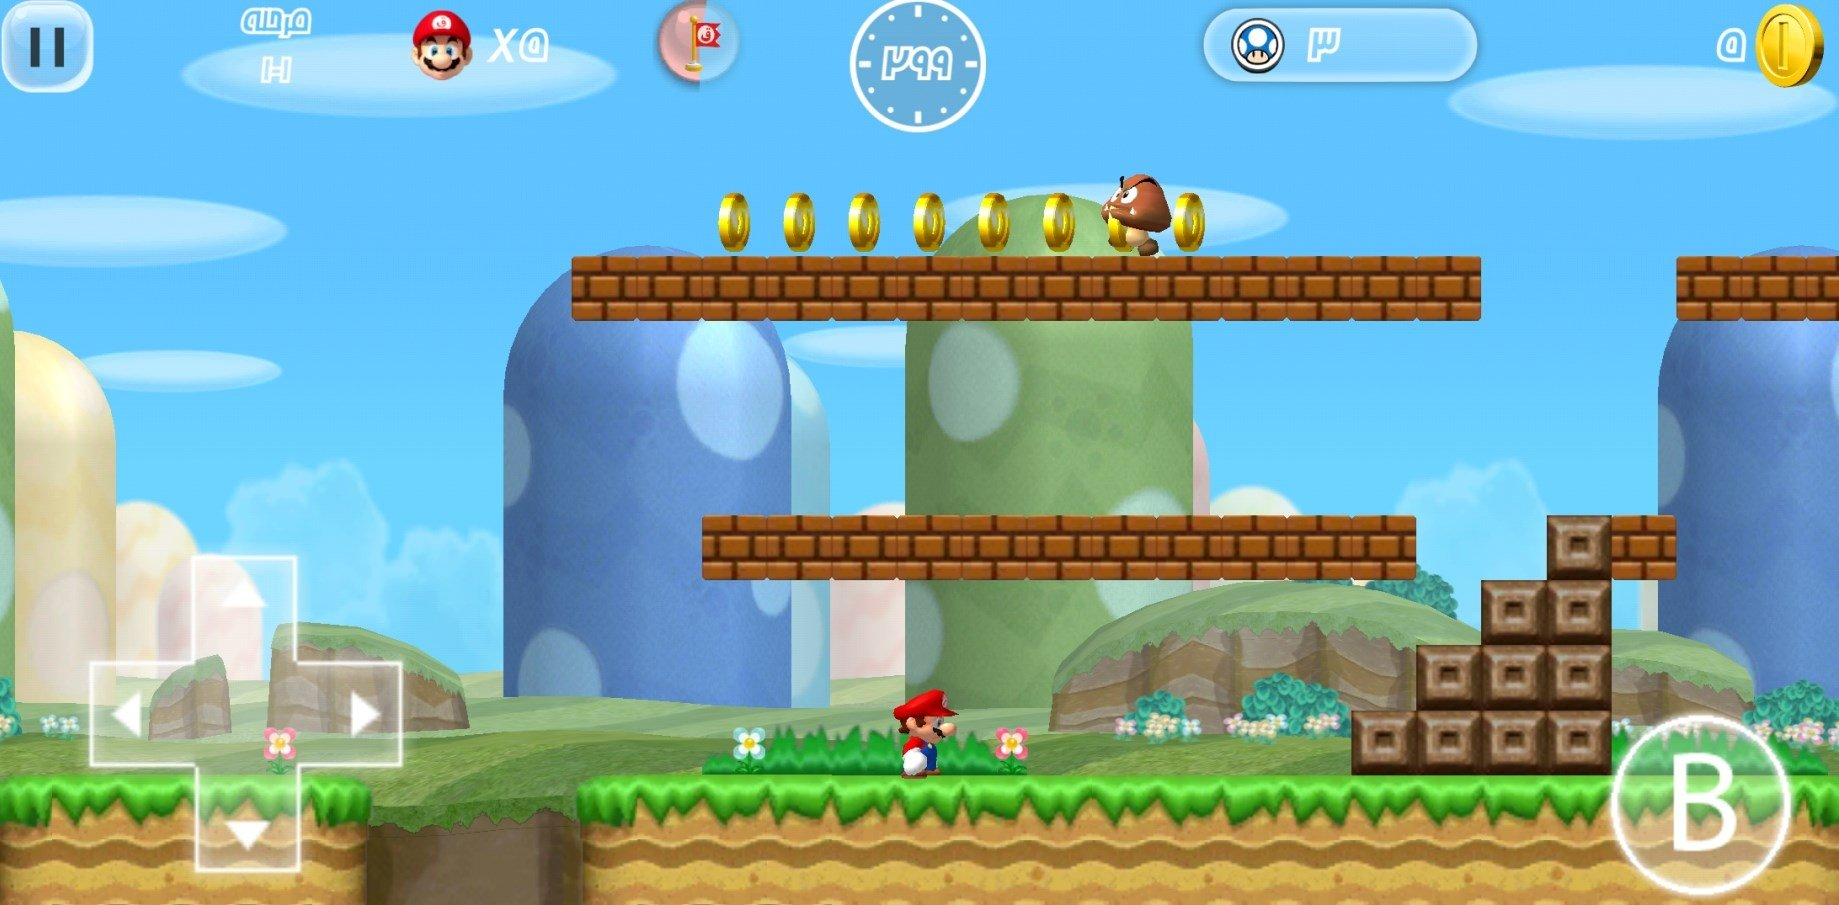 Super Mario 2 HD 1 0 - Download for Android APK Free